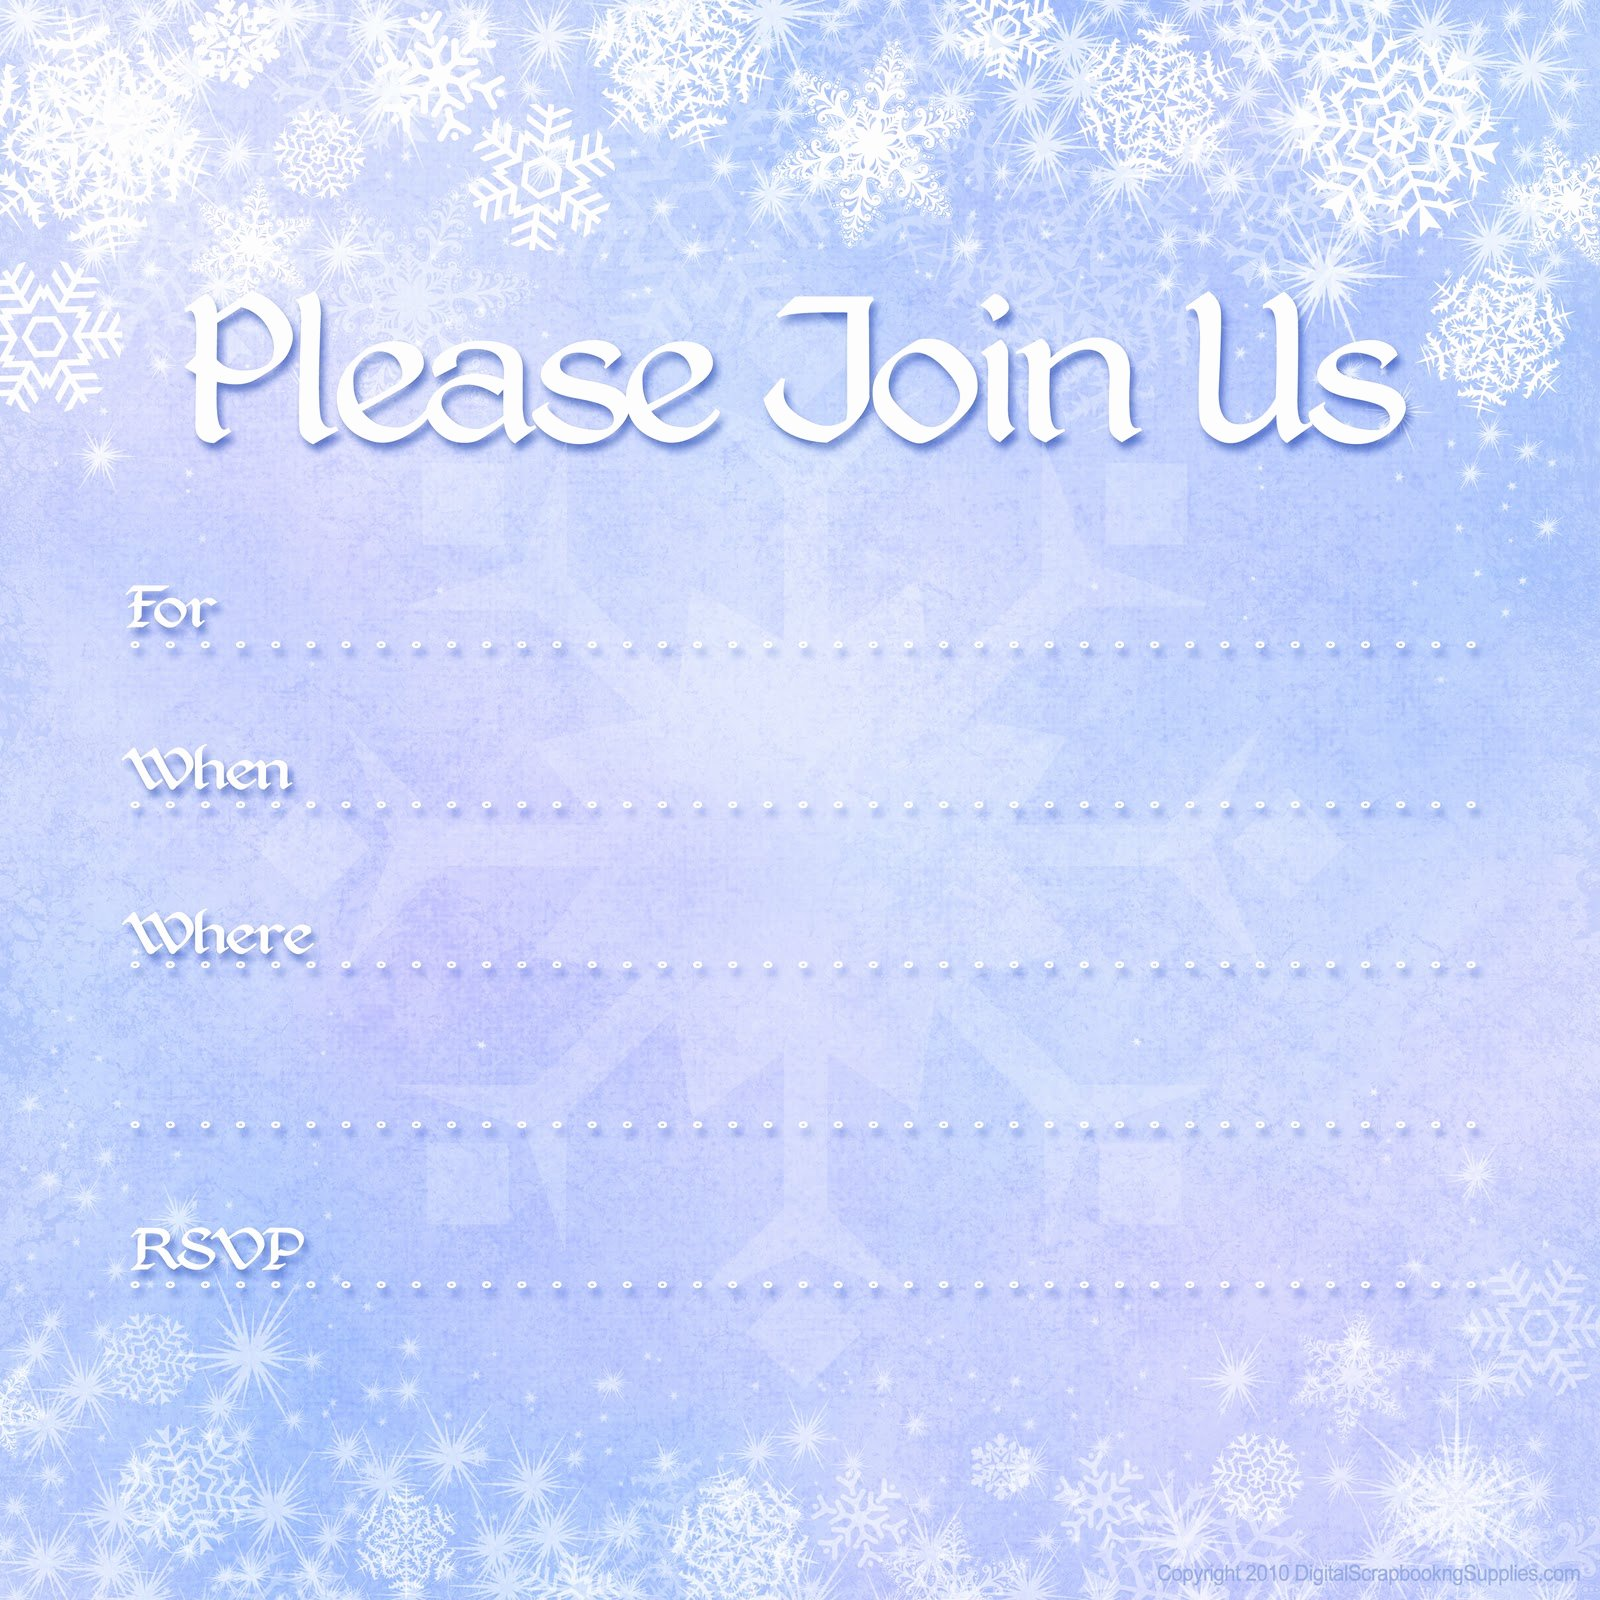 Free Winter Wonderland Invitations Templates Awesome Free Printable Party Invitations Free Winter Holiday